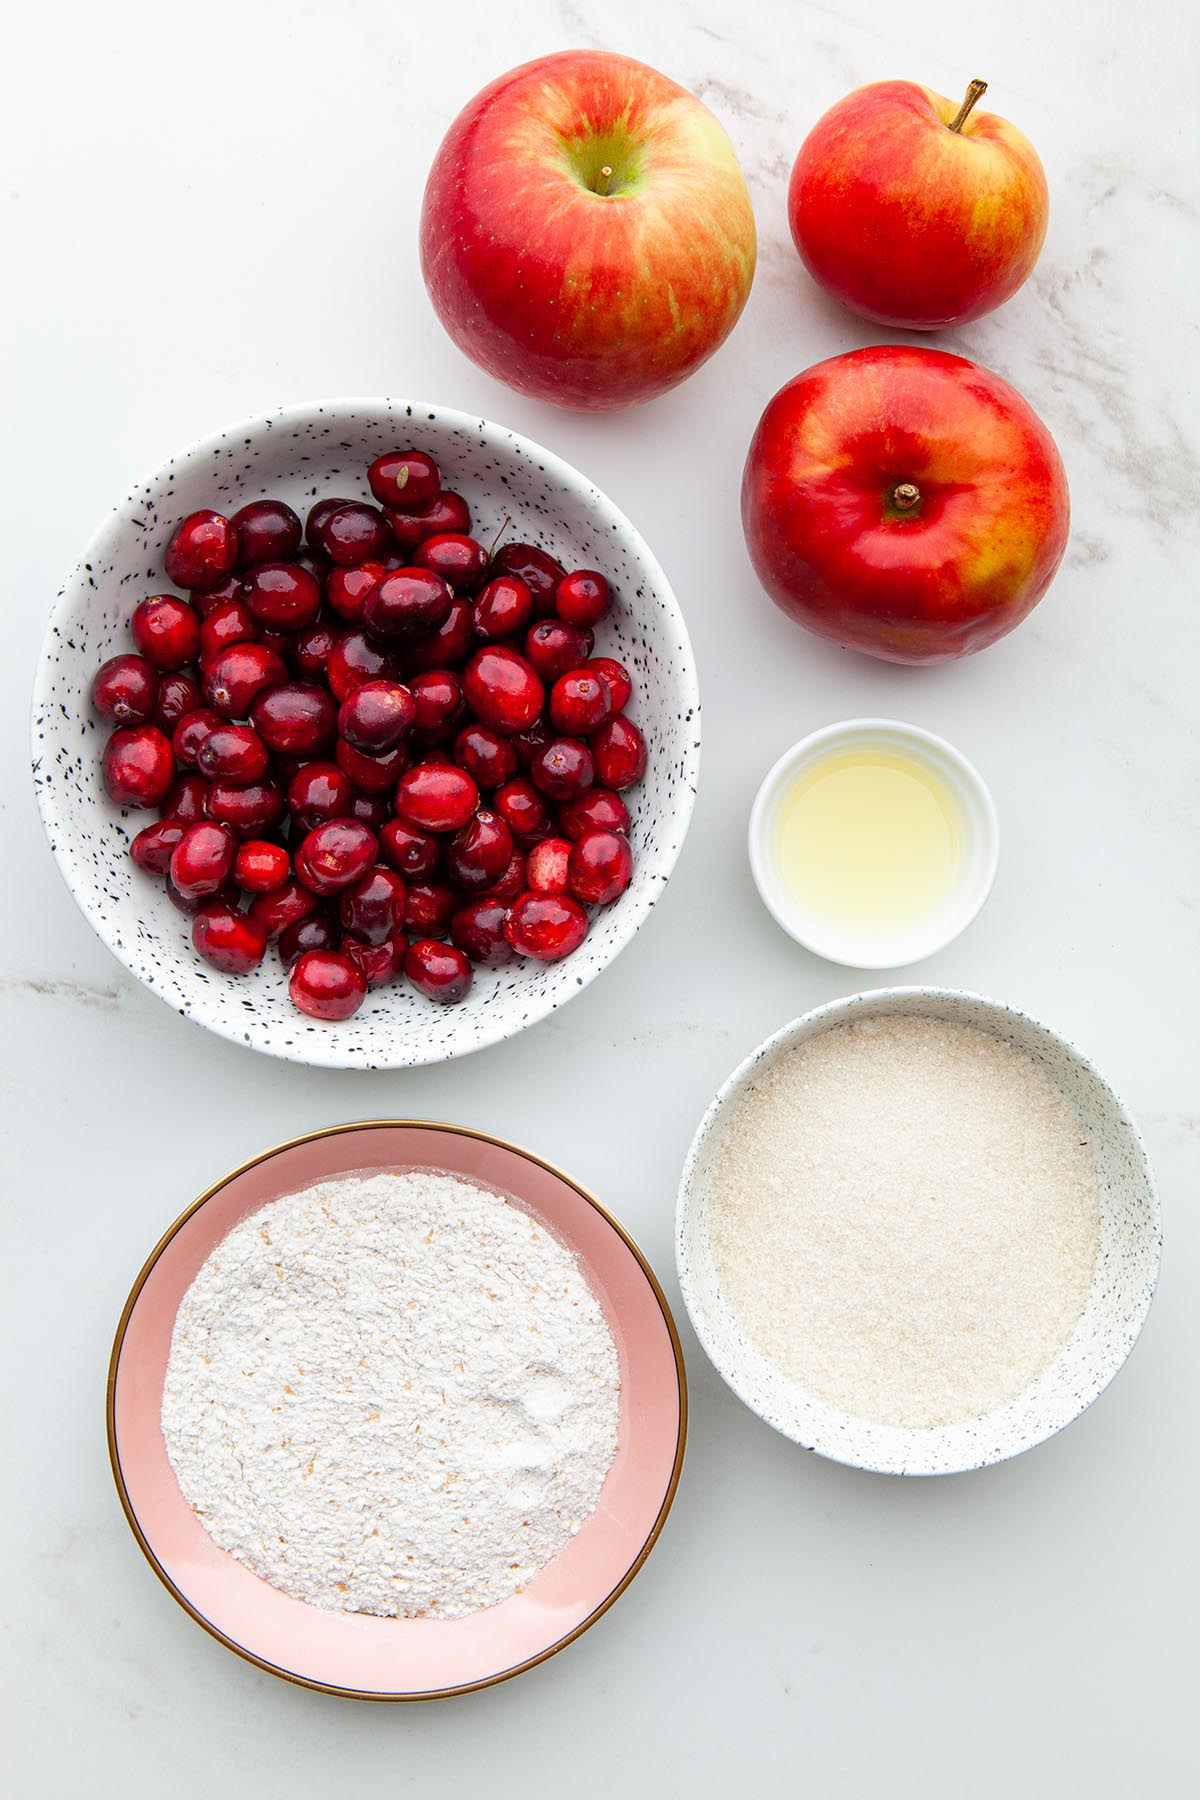 Ingredients to make cranberry apple crisp.